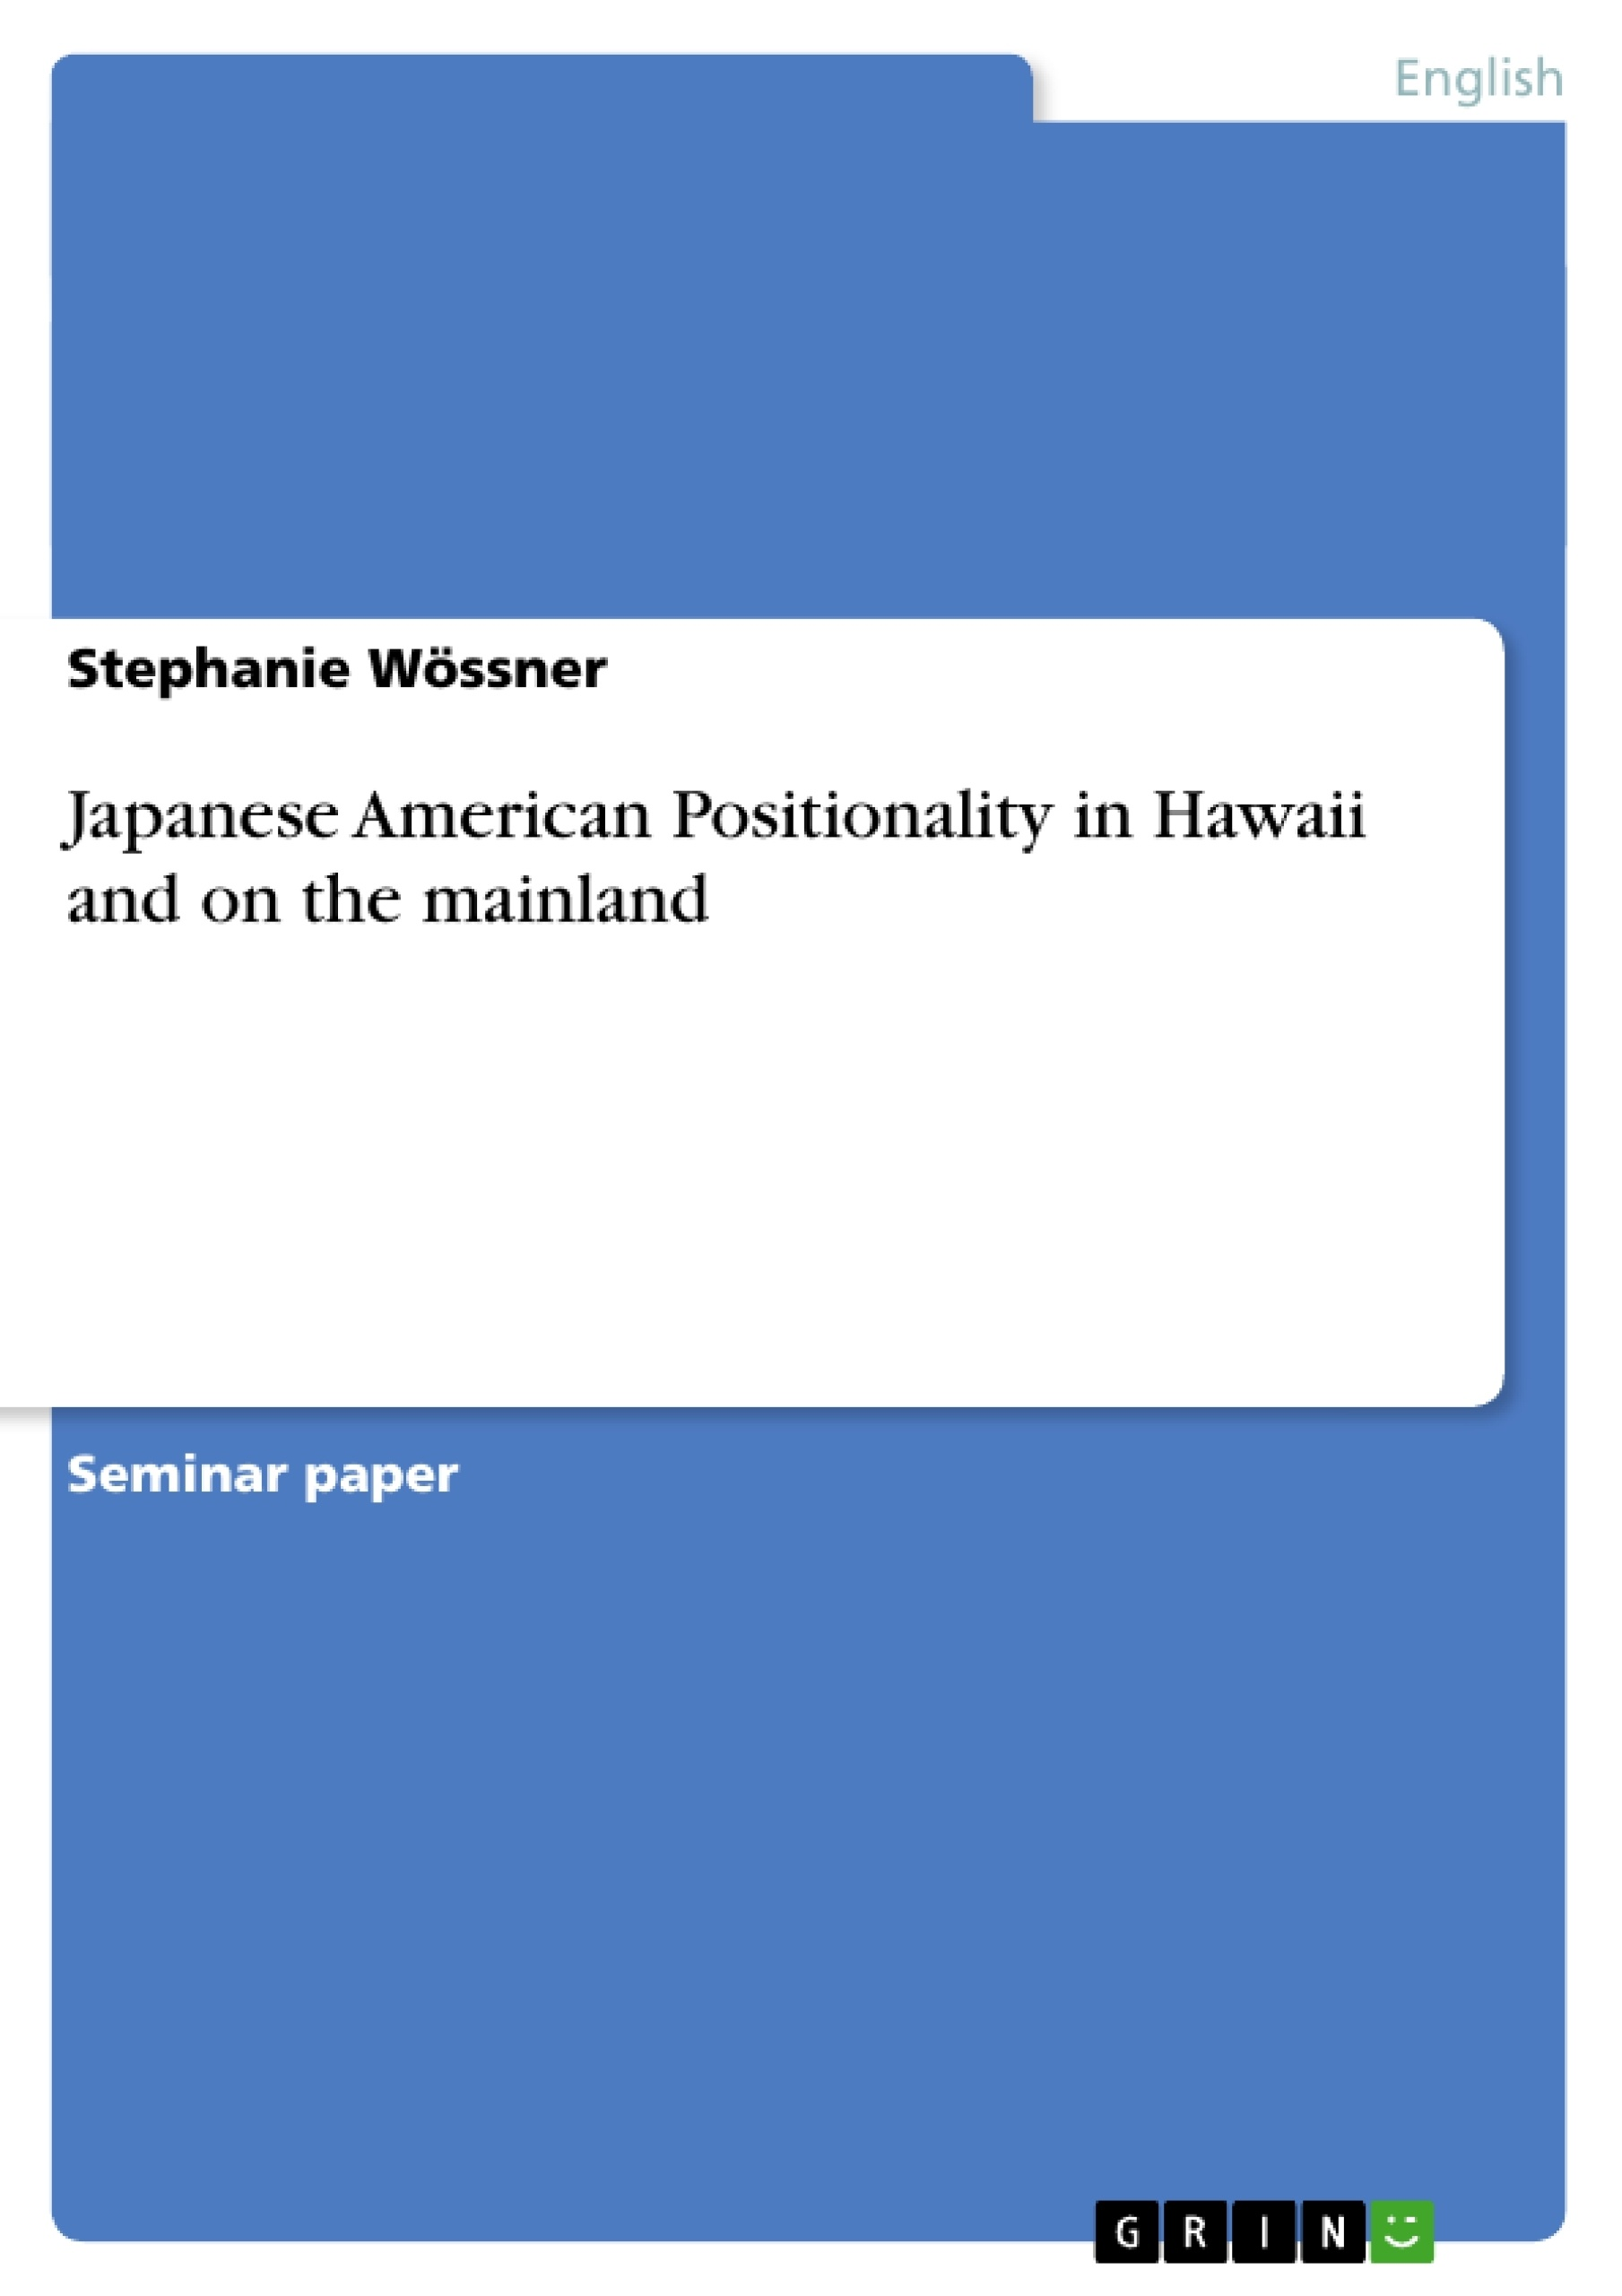 Title: Japanese American Positionality in Hawaii and on the mainland